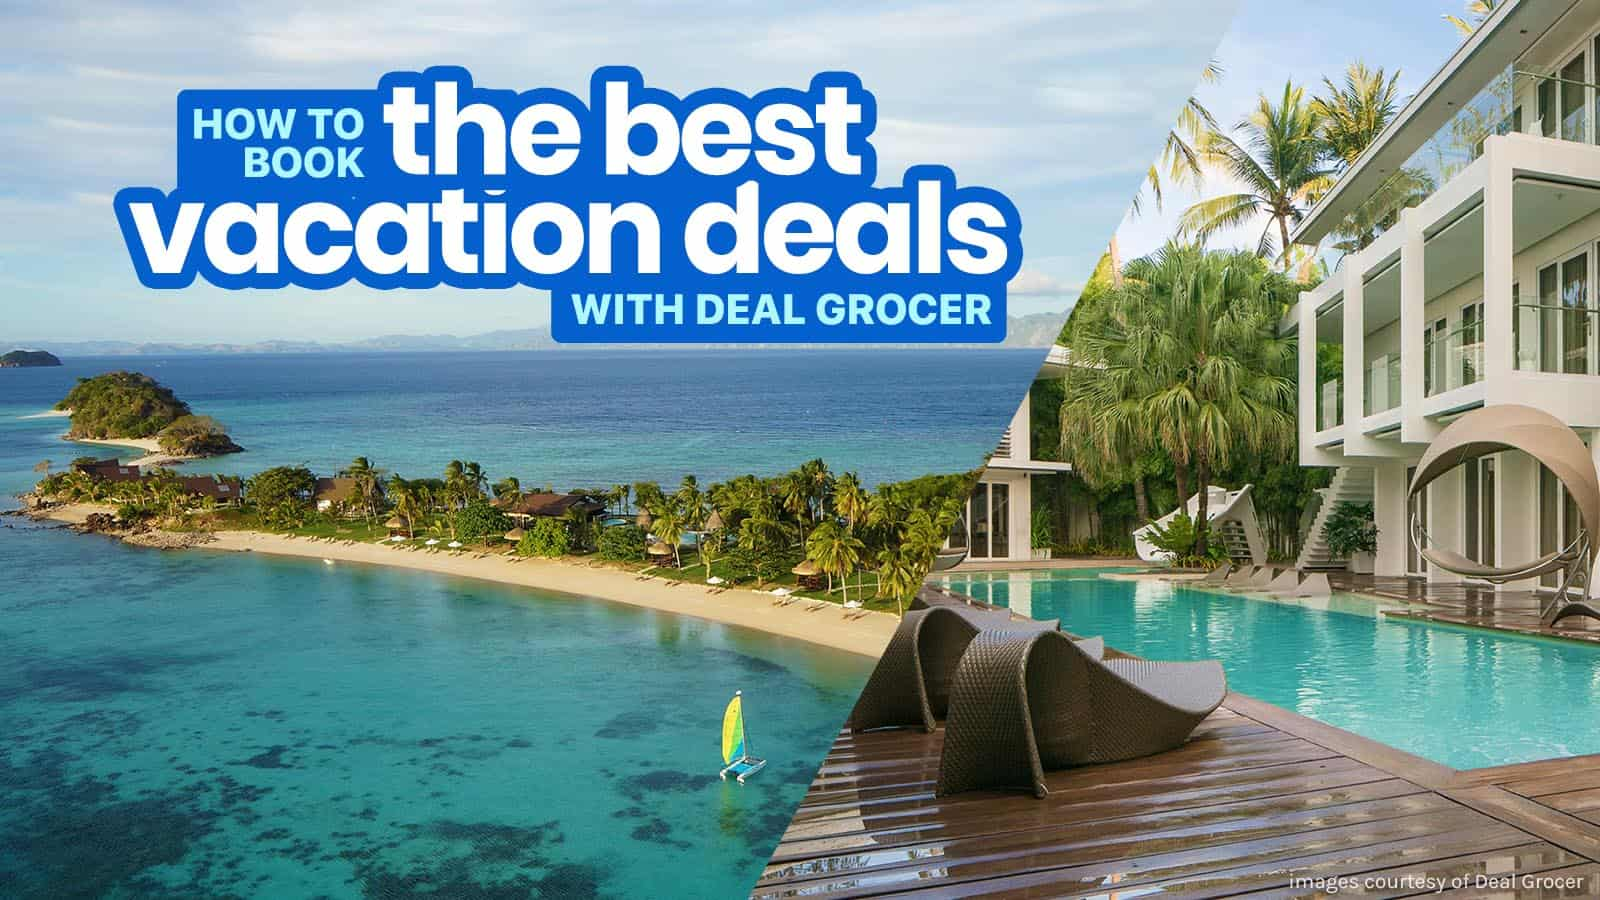 How to Book the BEST VACATION DEALS with Deal Grocer